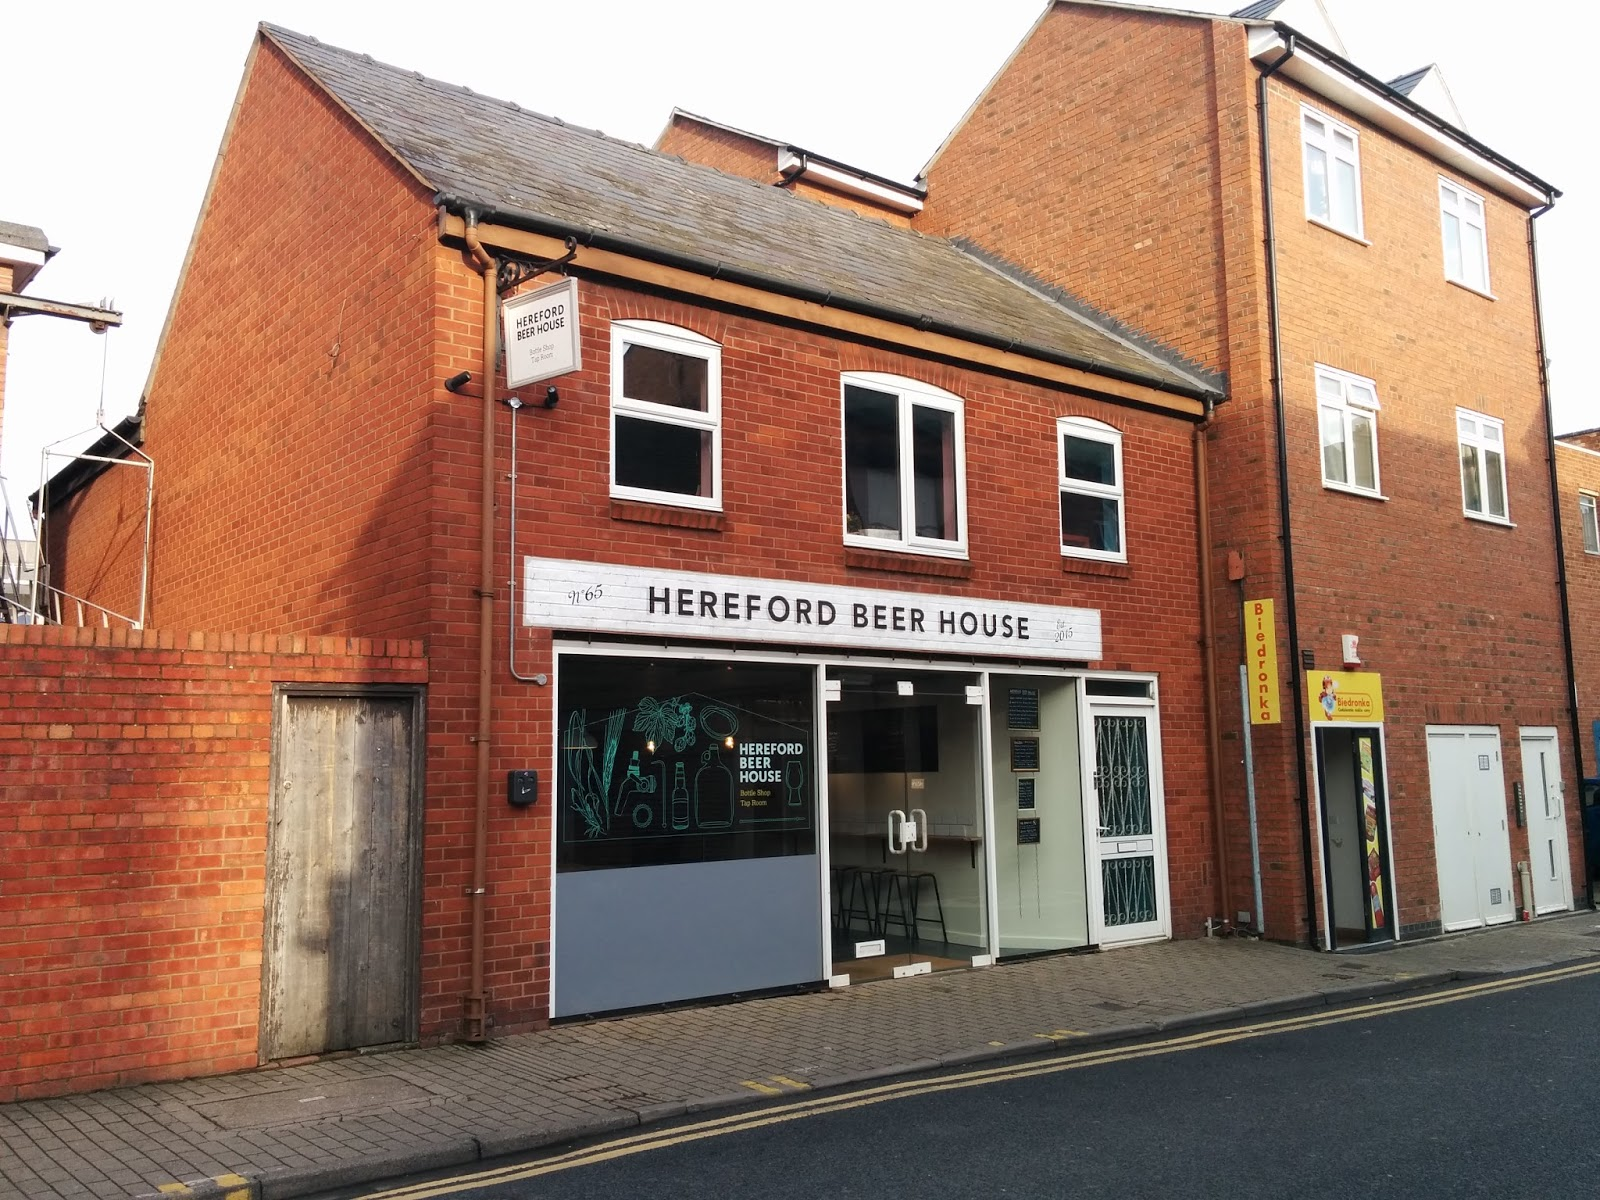 Hereford Beer House Is More Than Just A Beer Bar, However. The Beer  Offering Is Supported By Plenty Of Local Cider, Cheese U0026 Charcuterie,  Coffee U0026 Tea And ...